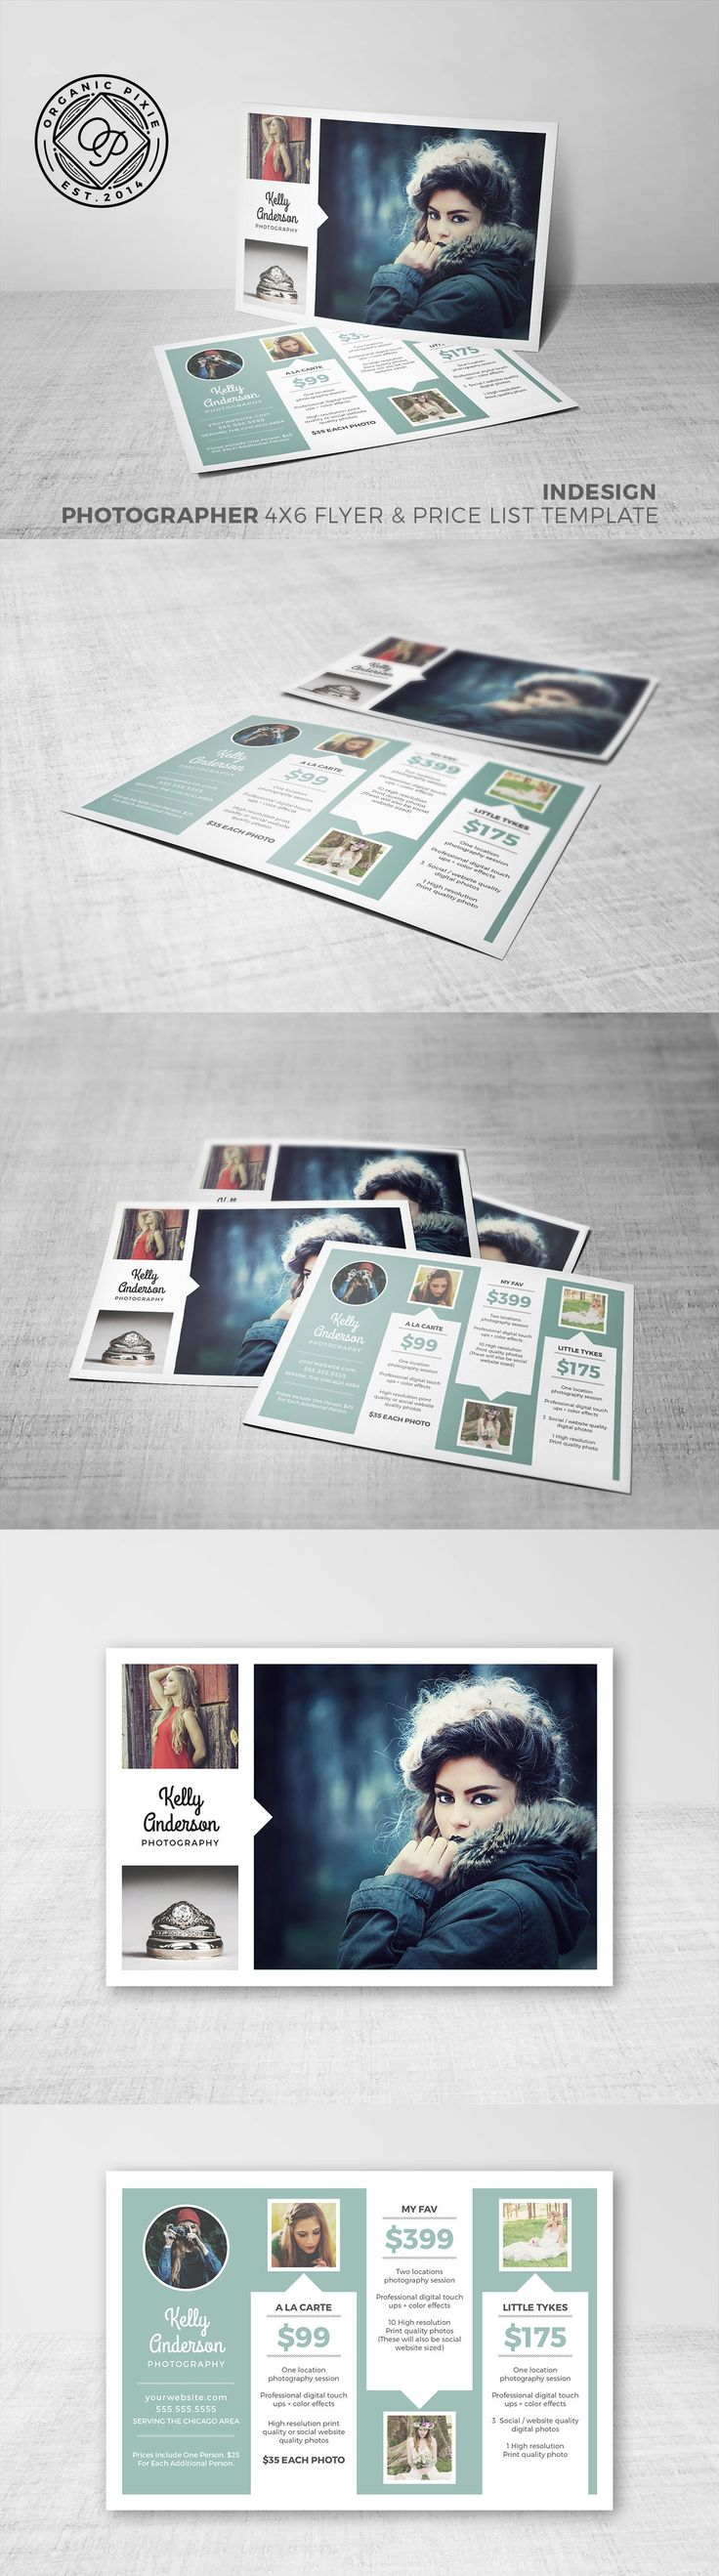 This is an easy to use photography postcard design or flyer template in InDesign. Included are all the photos that are FREE to use downloaded from pixabay.com with no restriction. It is easy to change the color palette and the fo